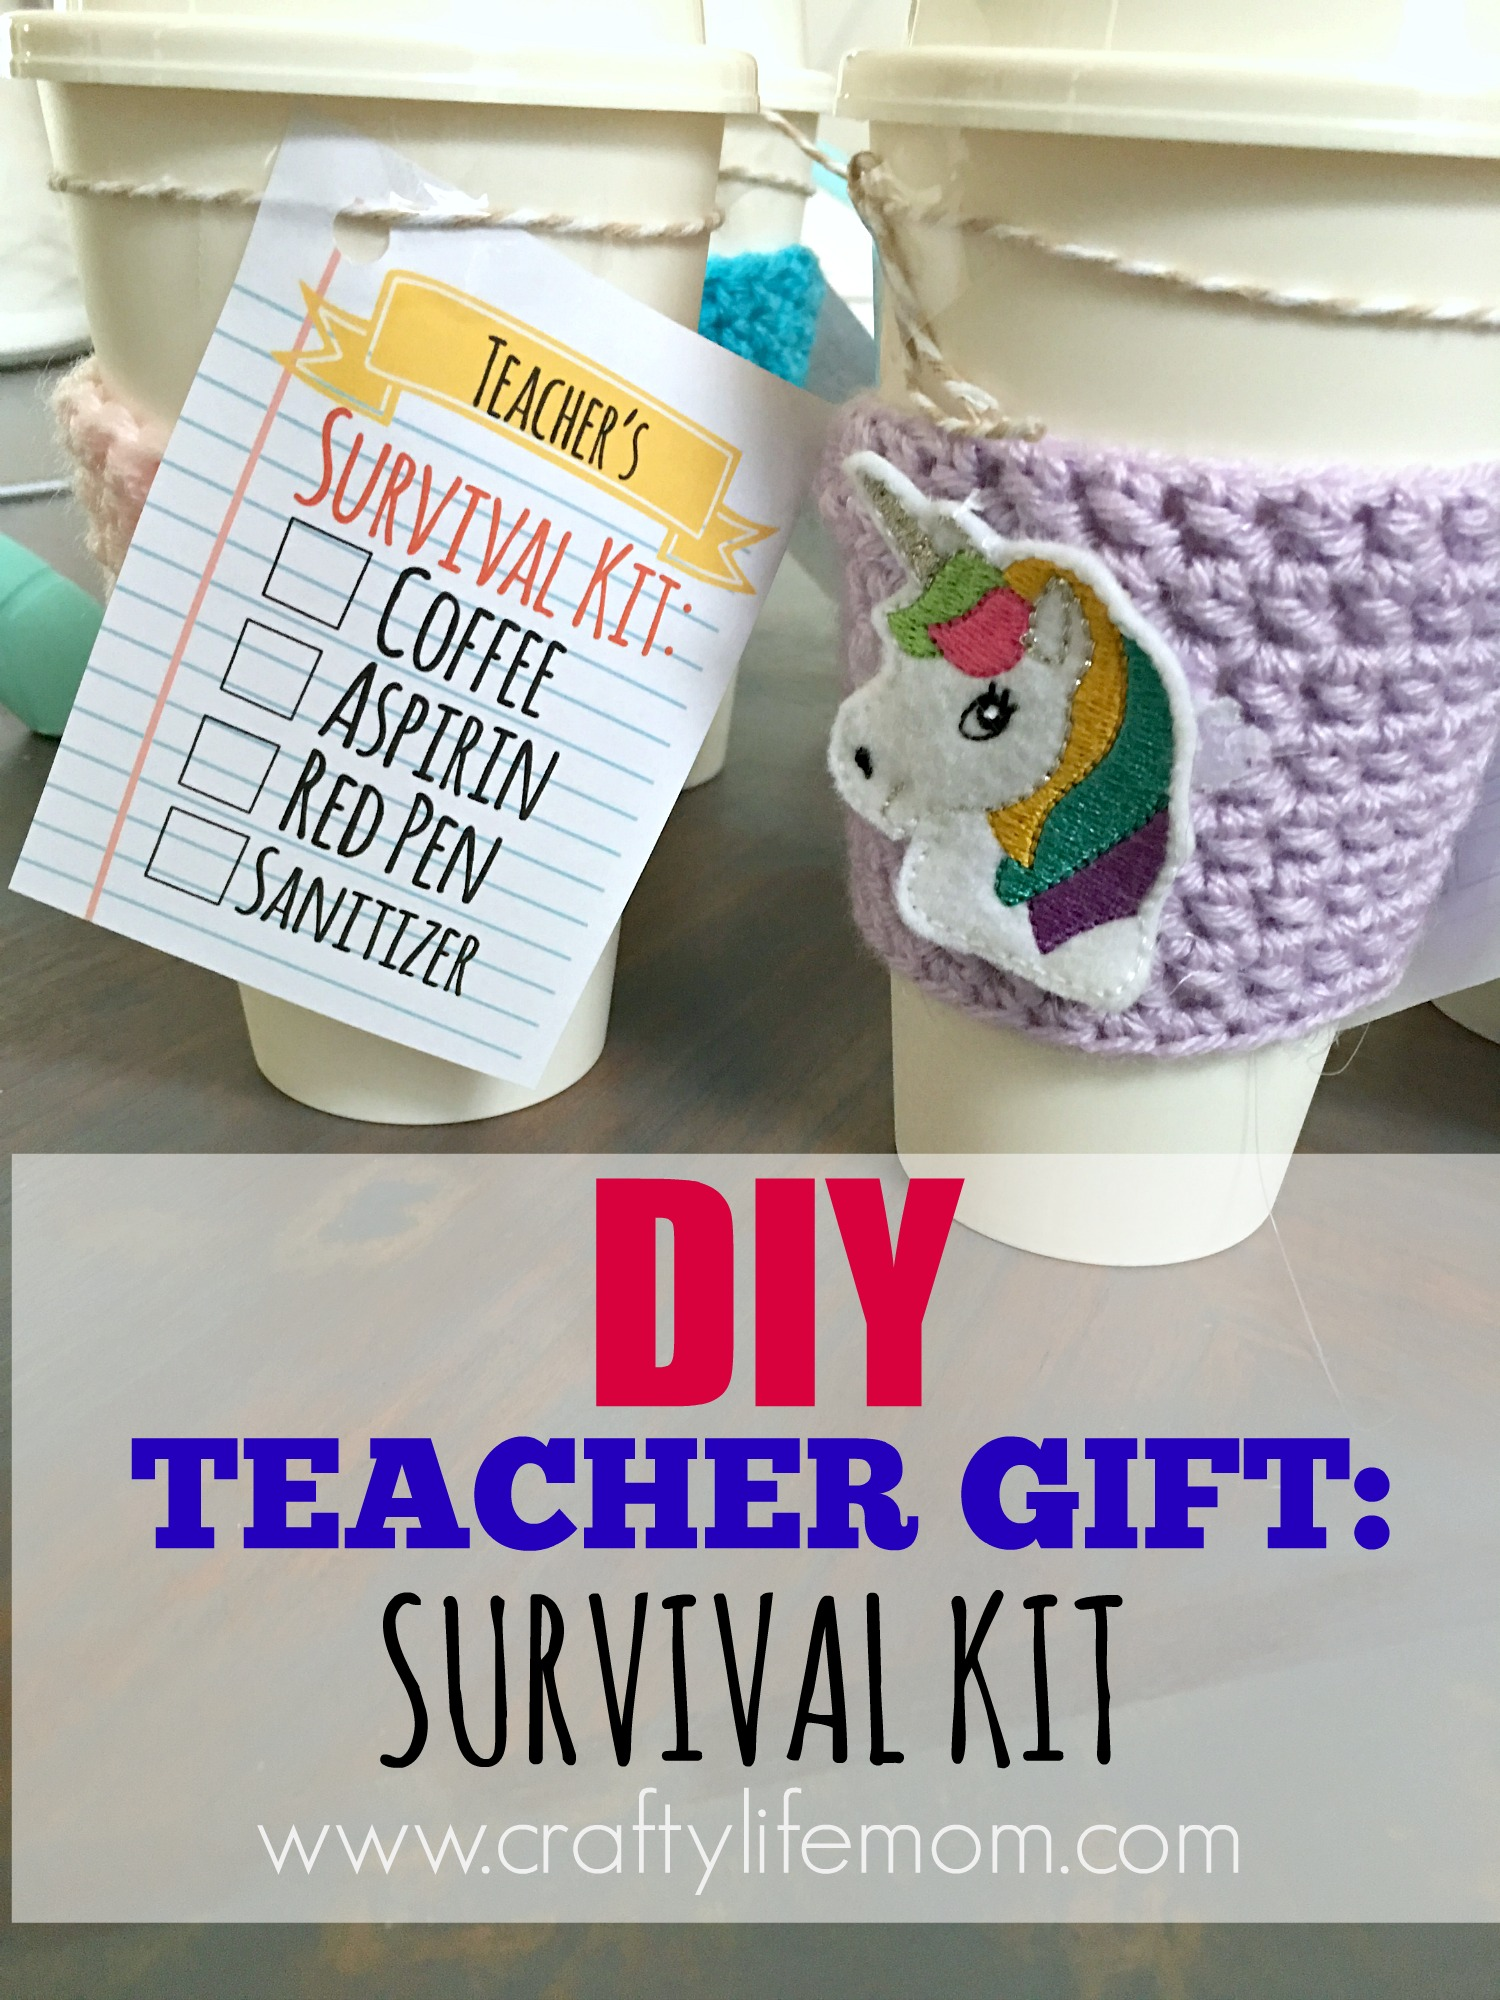 DIY Teacher Gift: Coffee Survival kit you can make in minutes using items form the dollar tree.